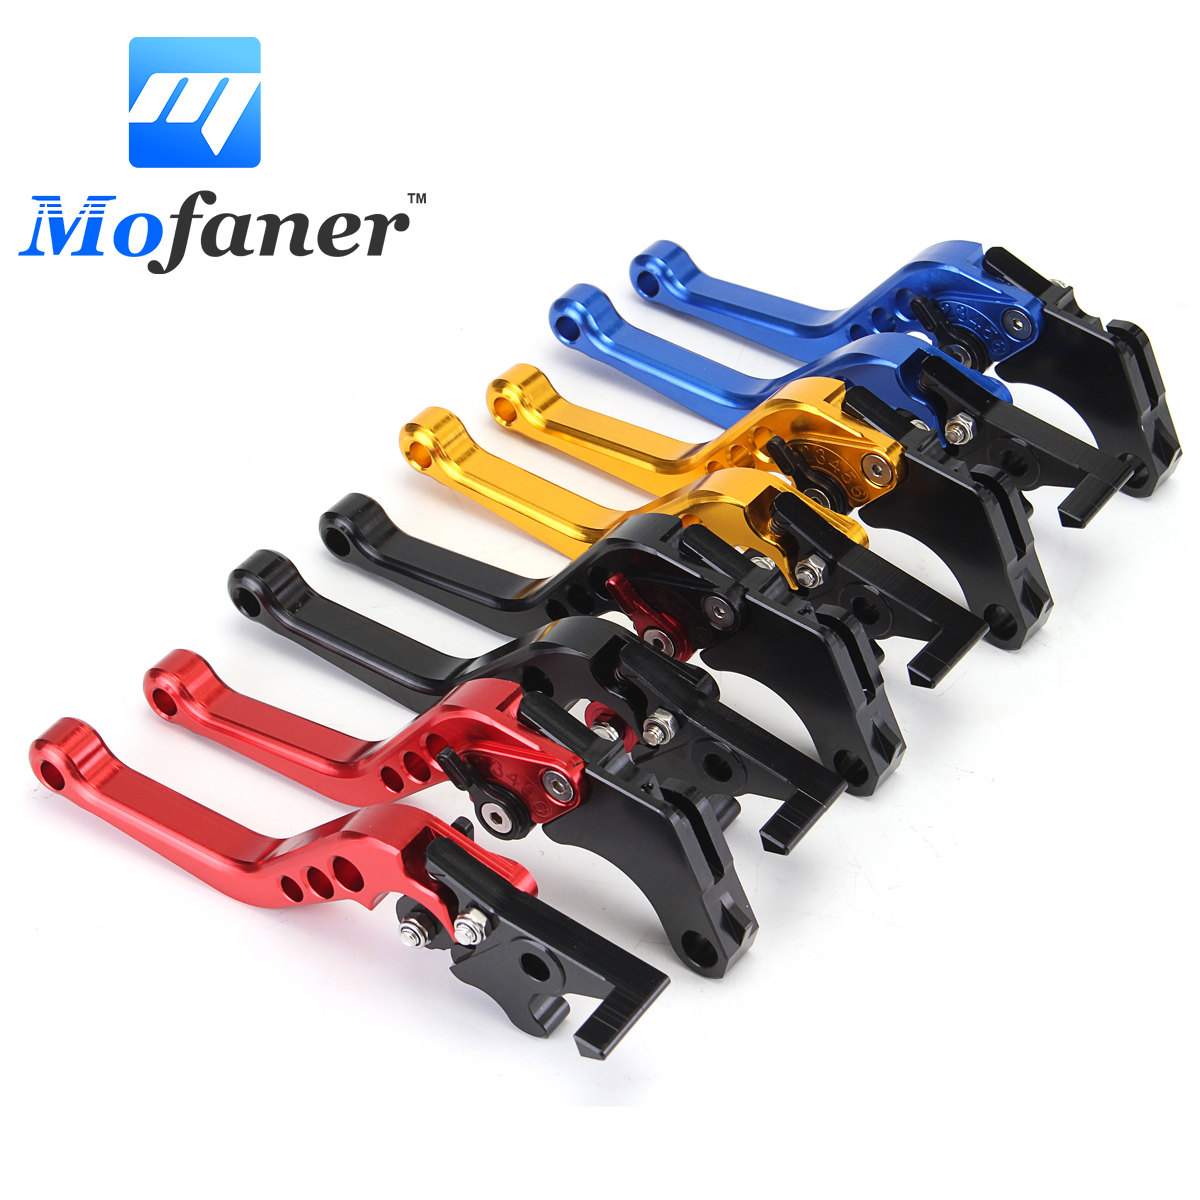 CNC Short Adjuster Brake Clutch Levers For Honda Grom MSX125 14-17/ CBR250R 11-13 cnc short racing clutch brake levers without brake cylinder and clutch perch for honda cbr250r cb400 cb599 cb600 cb919 cbr900rr